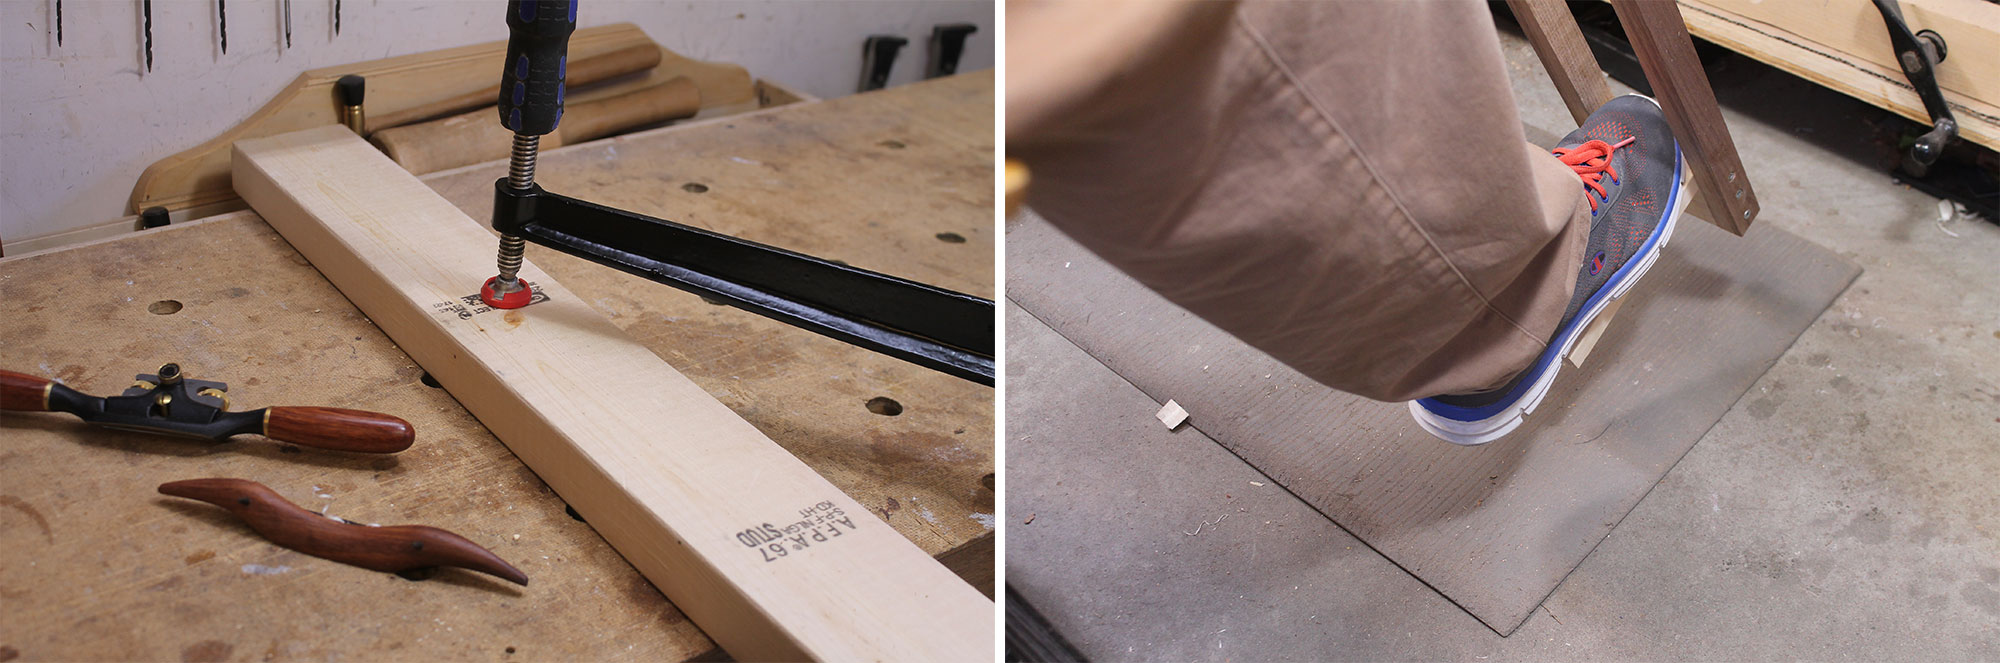 Left: Securing the beam on the bench. Right: Foot pushing the pedal.